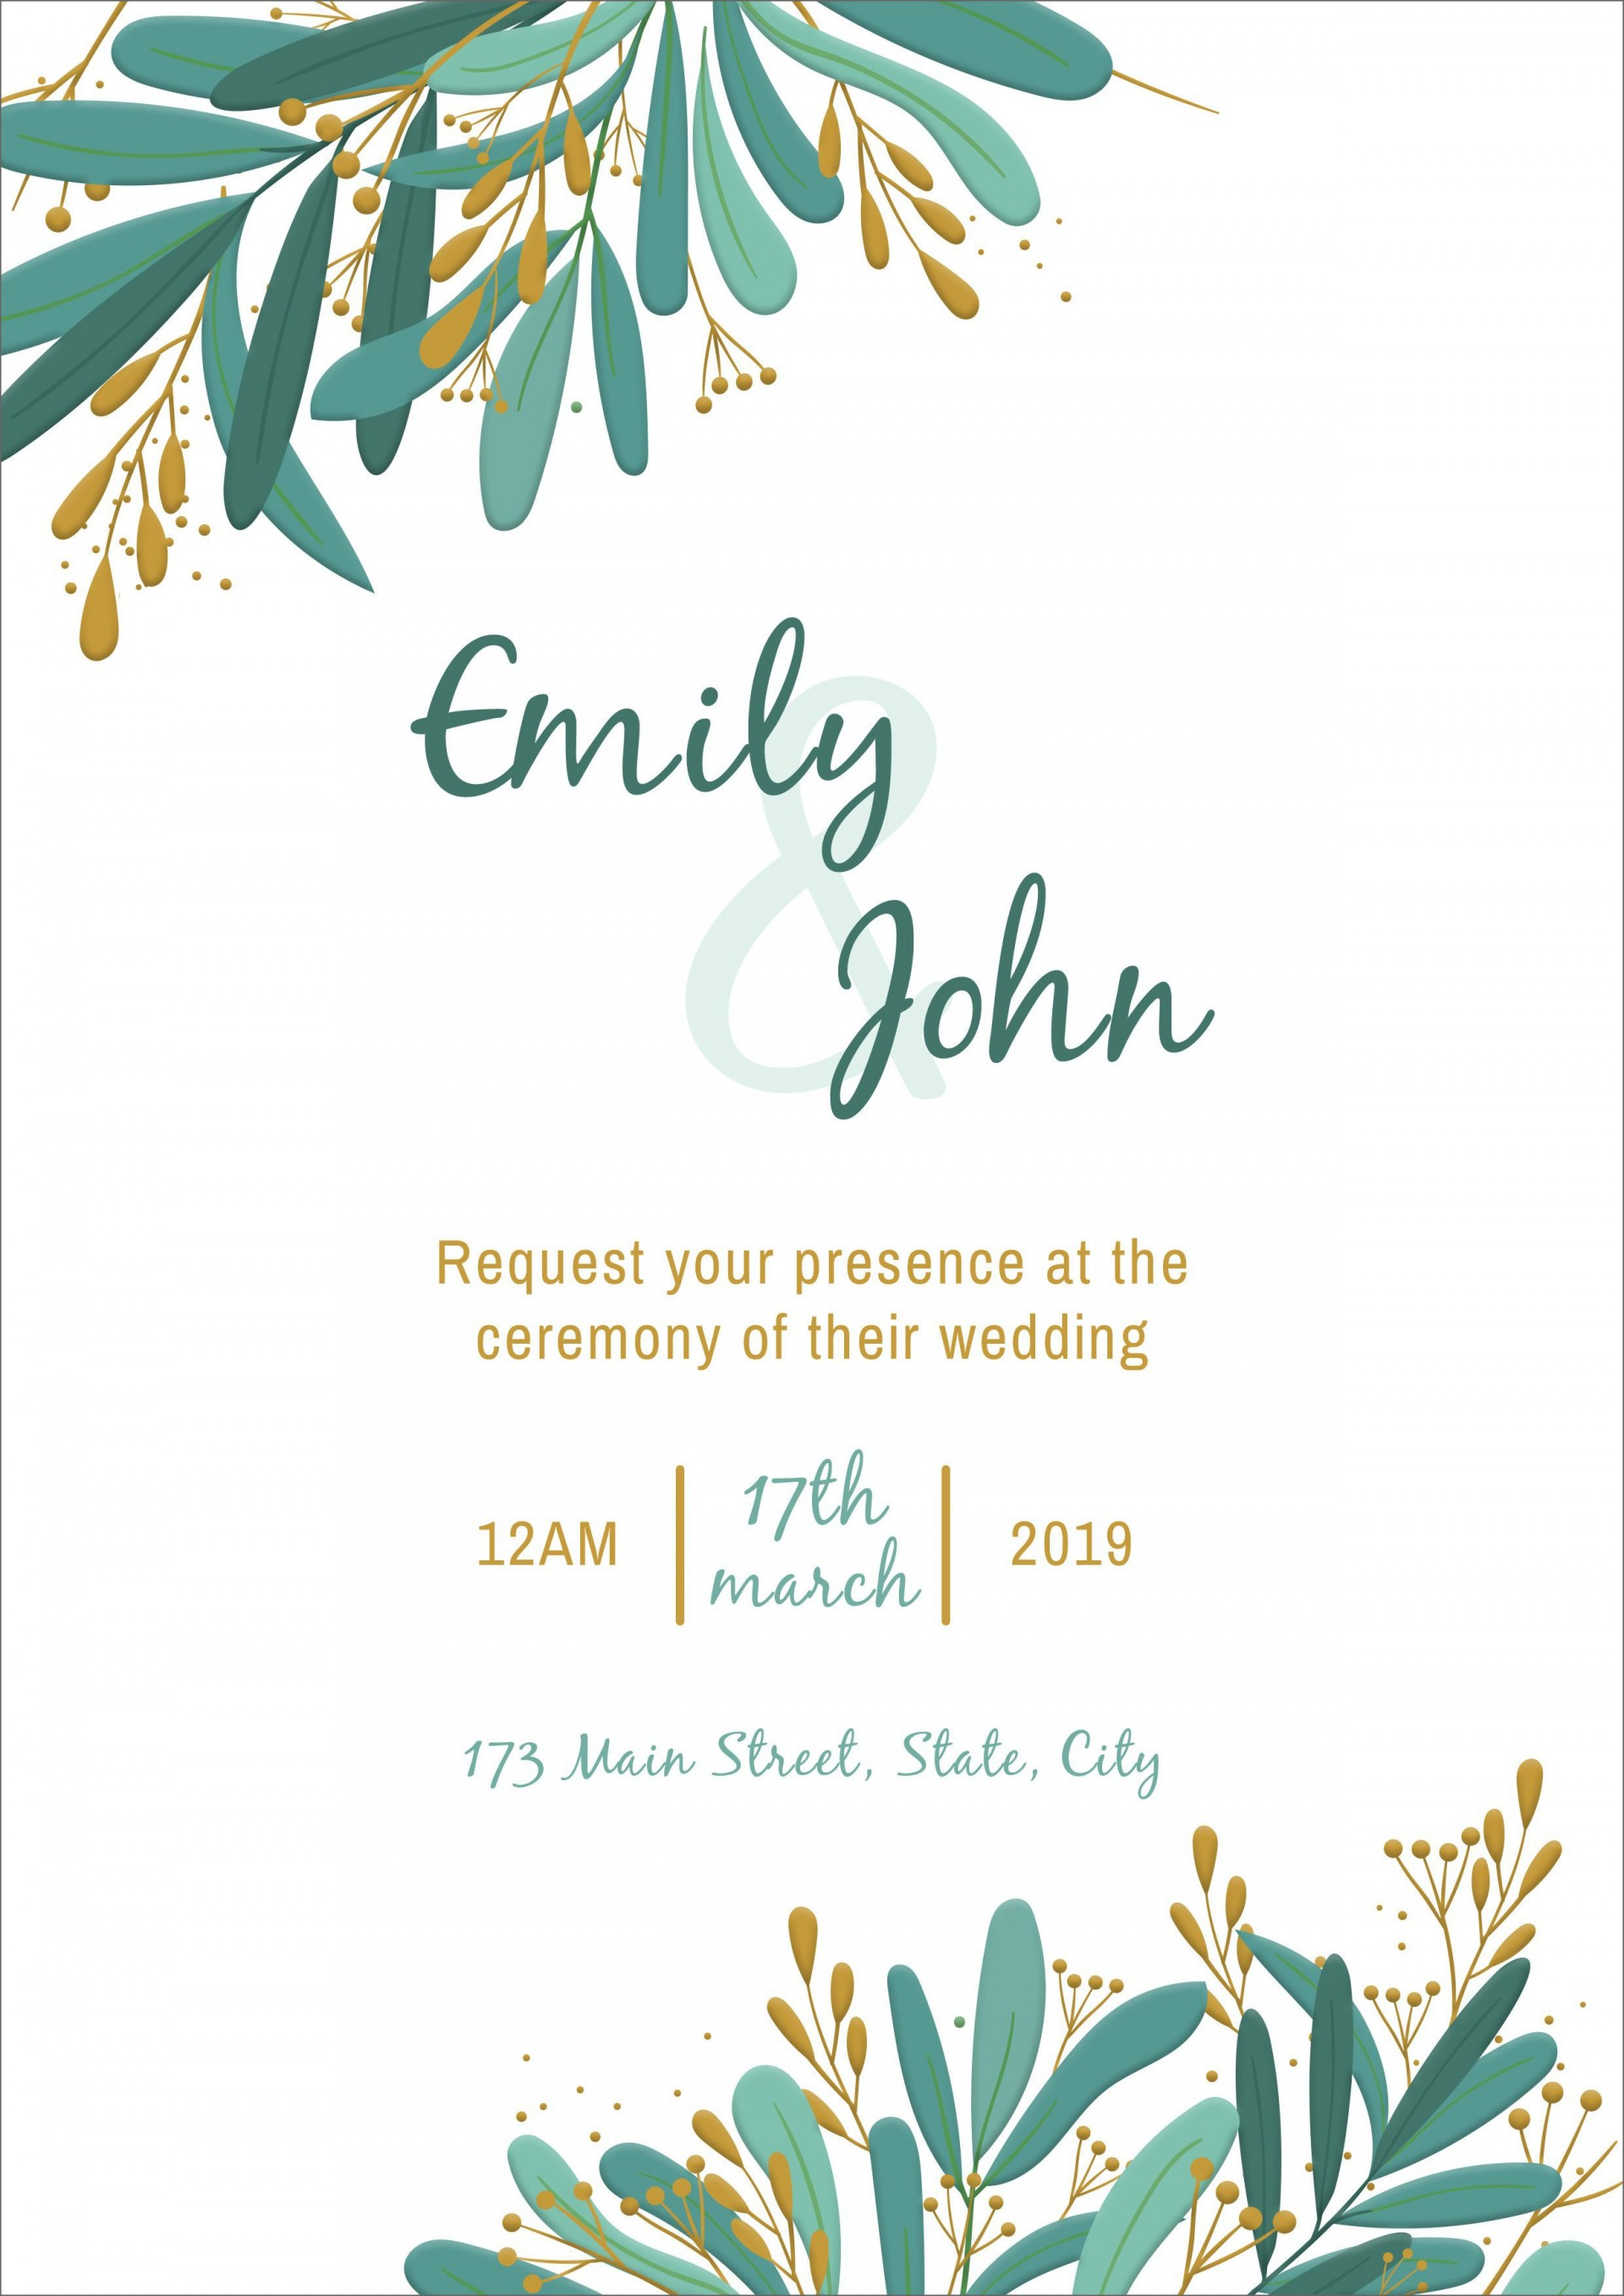 008 Phenomenal Blank Wedding Invitation Template Picture  Templates Free Download Printable Royal Blue1920